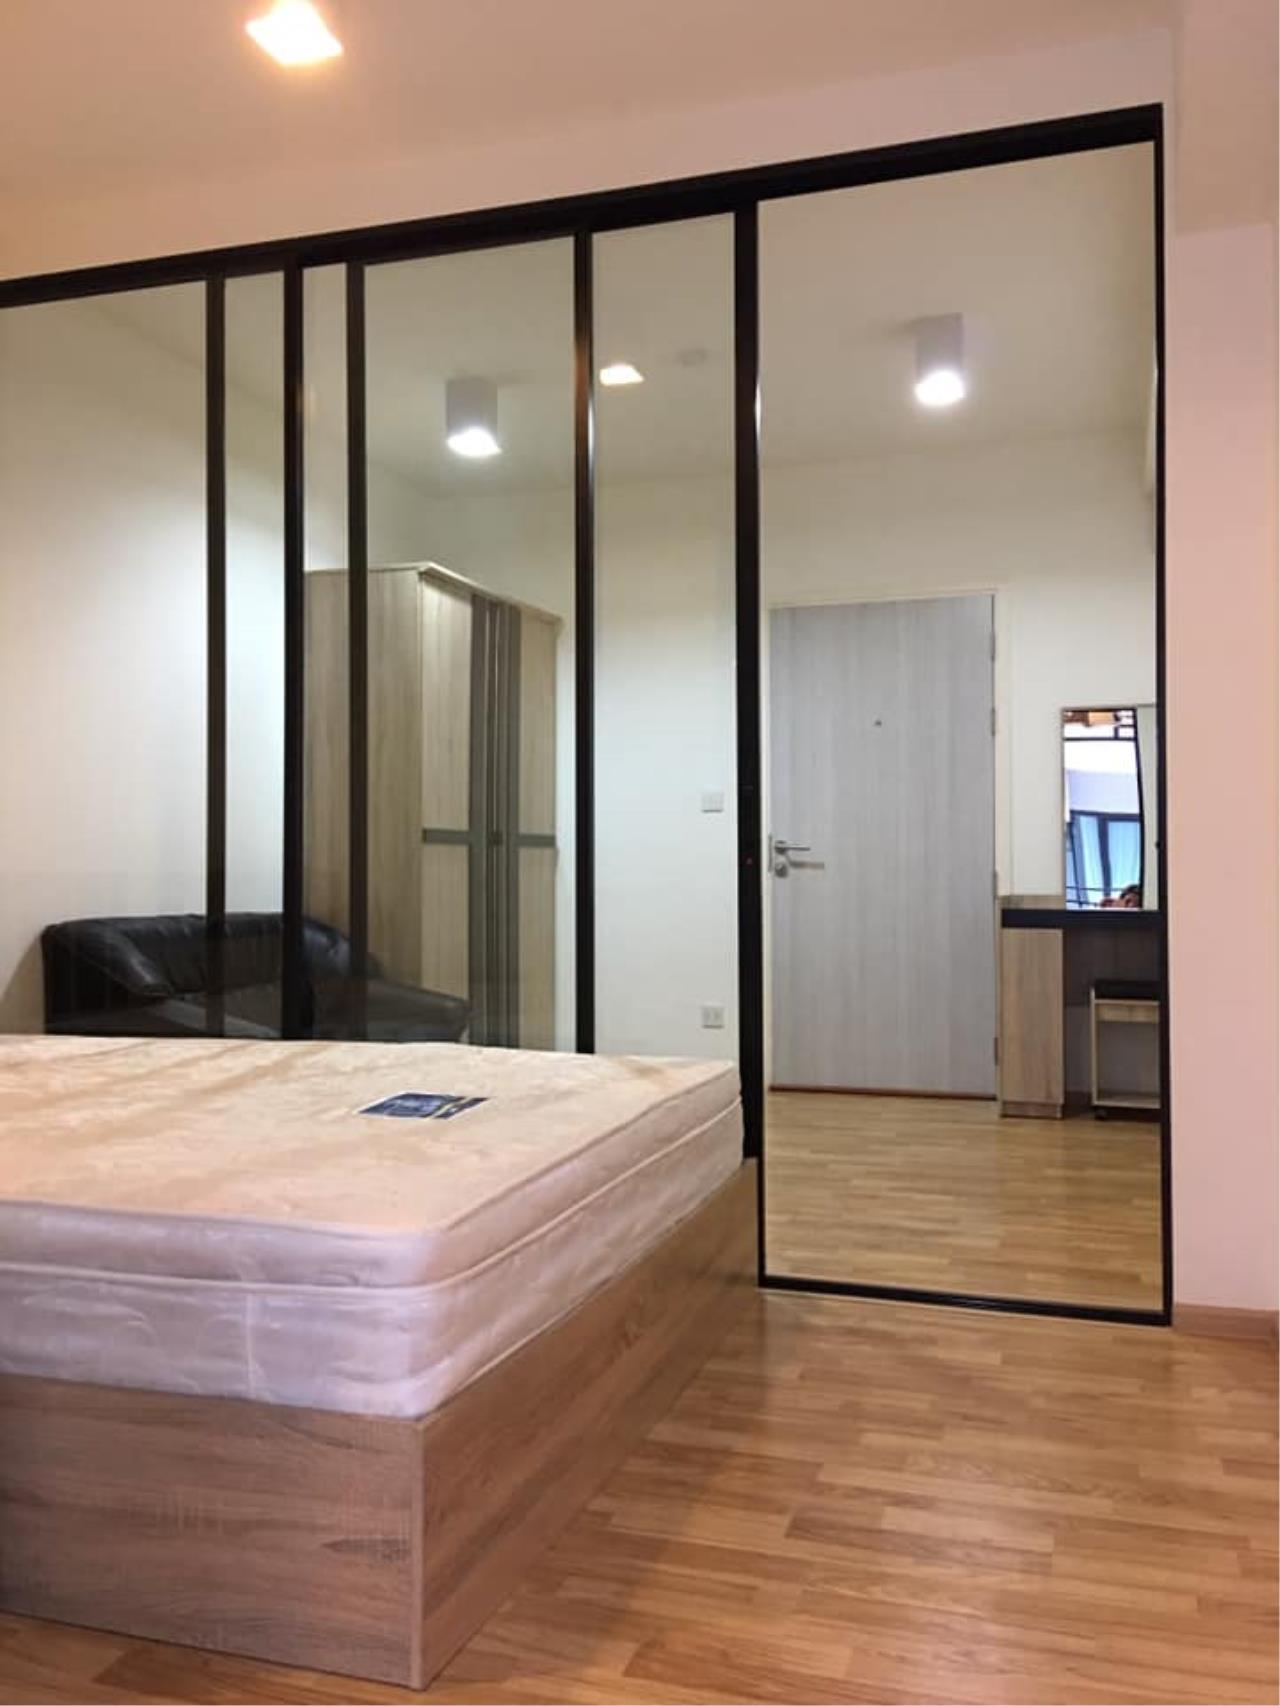 Agent - Prombood Agency's Sale - 1 Bedroom 23 sq.m. The Cabana near Samrong BTS Station 2